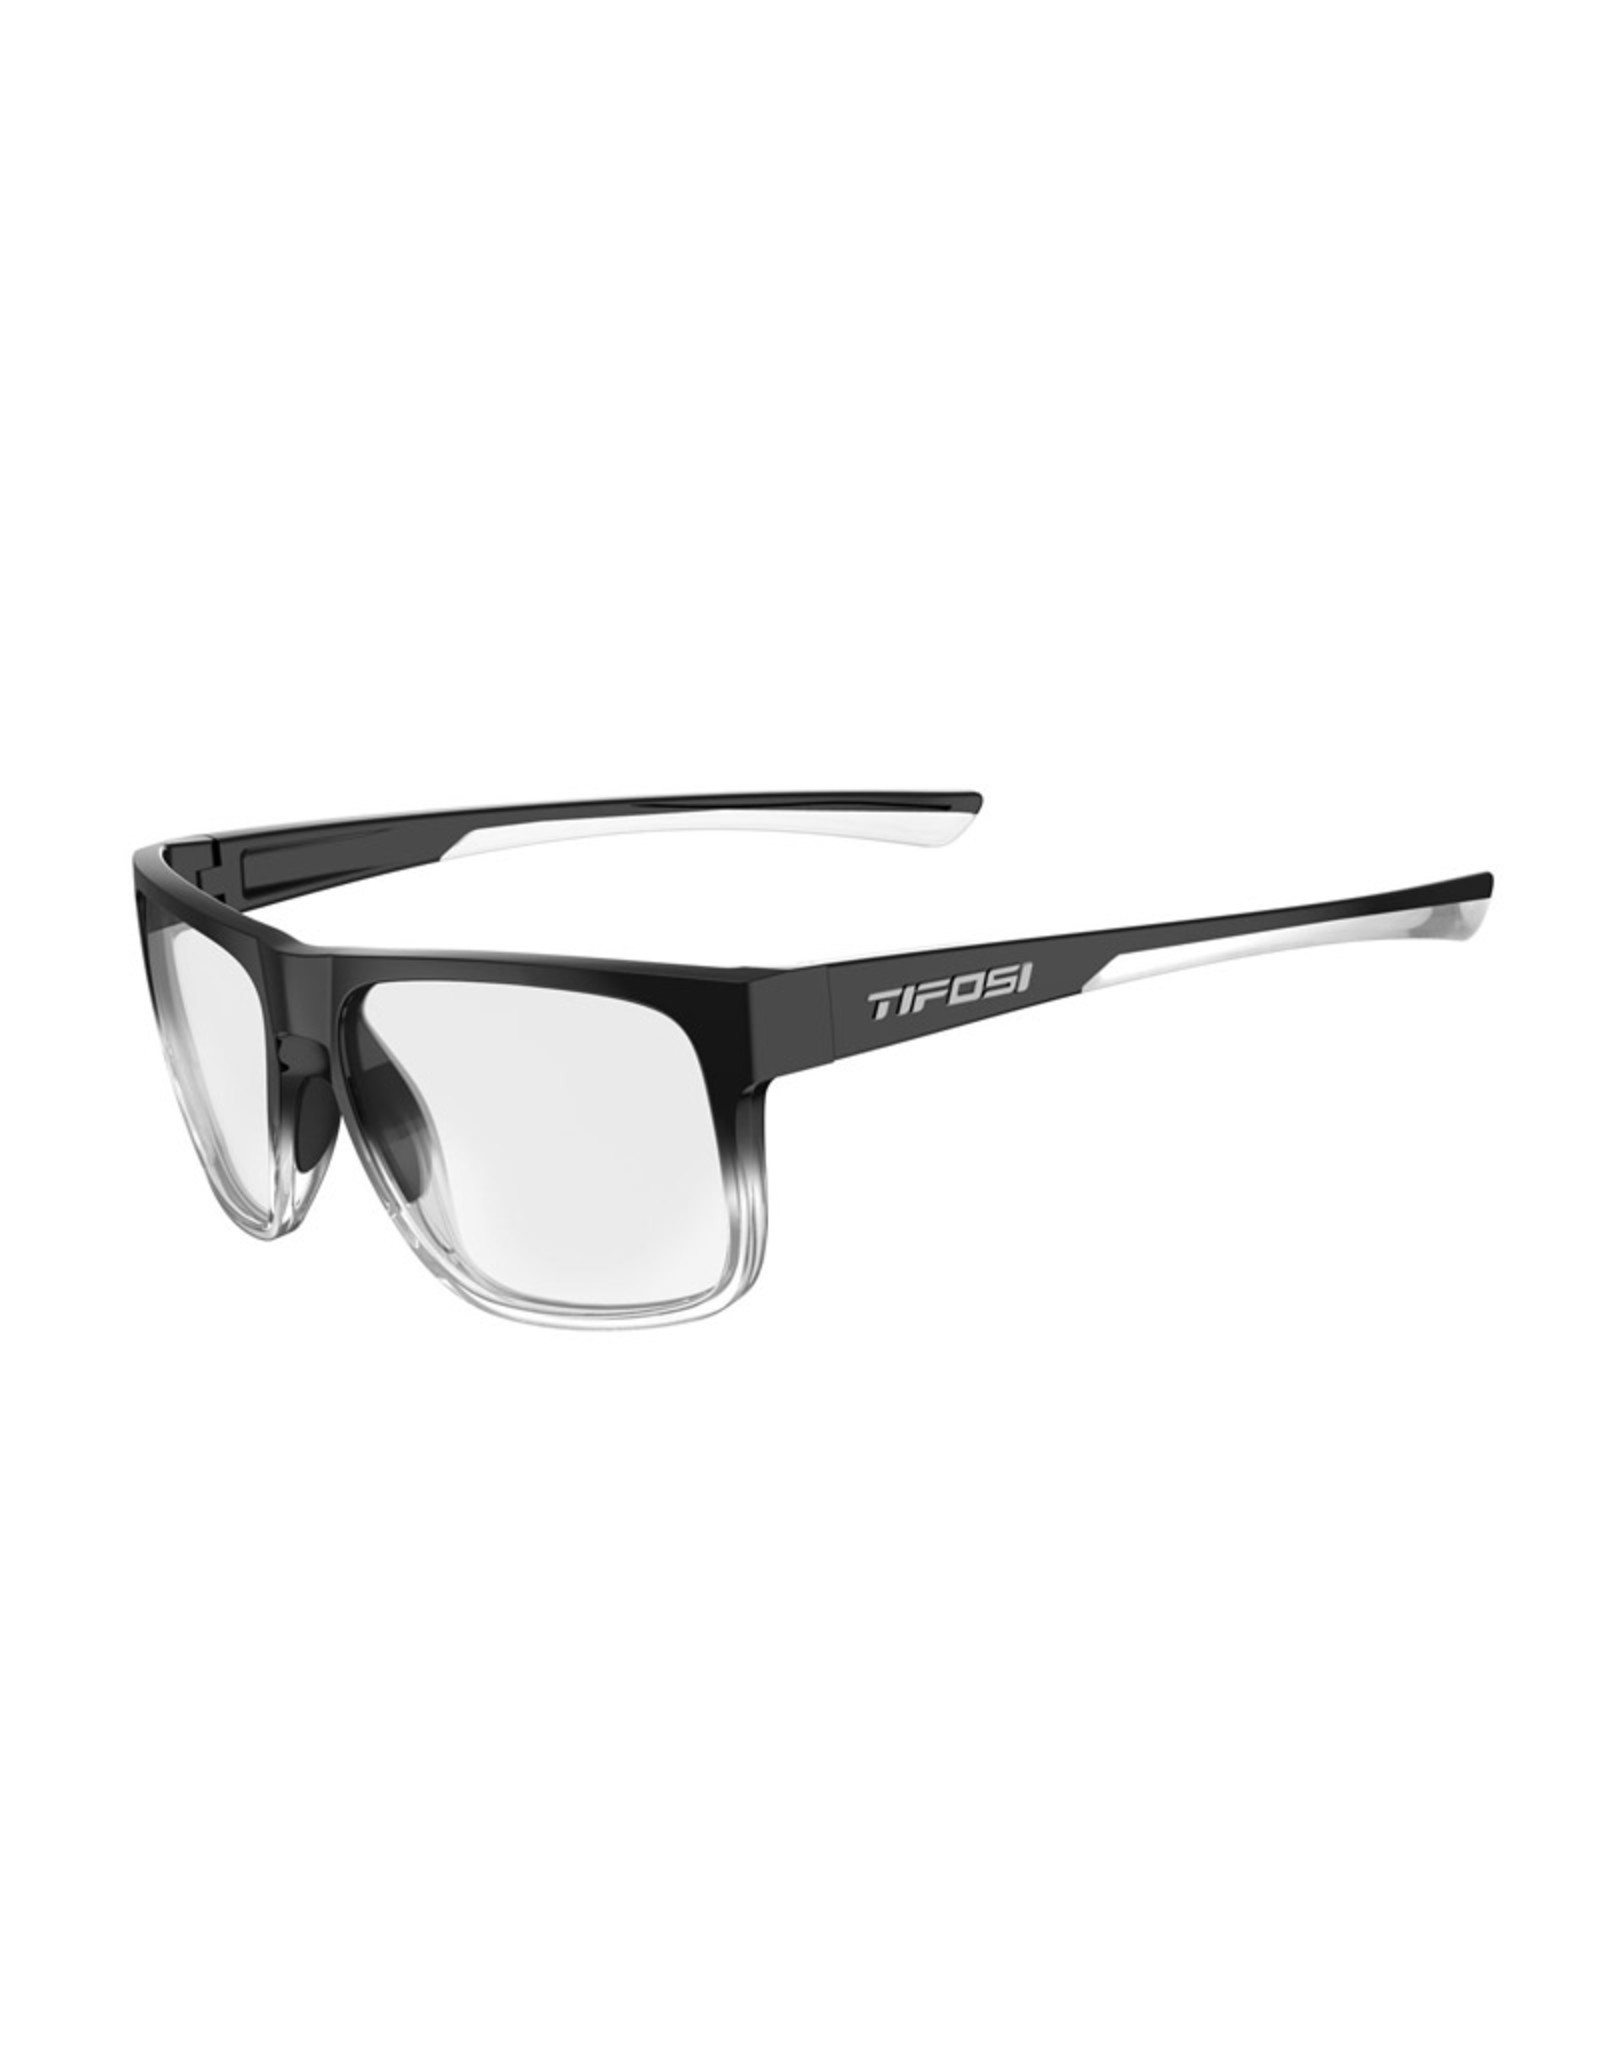 TIFOSI OPTICS SWICK SATIN ONYX FADE